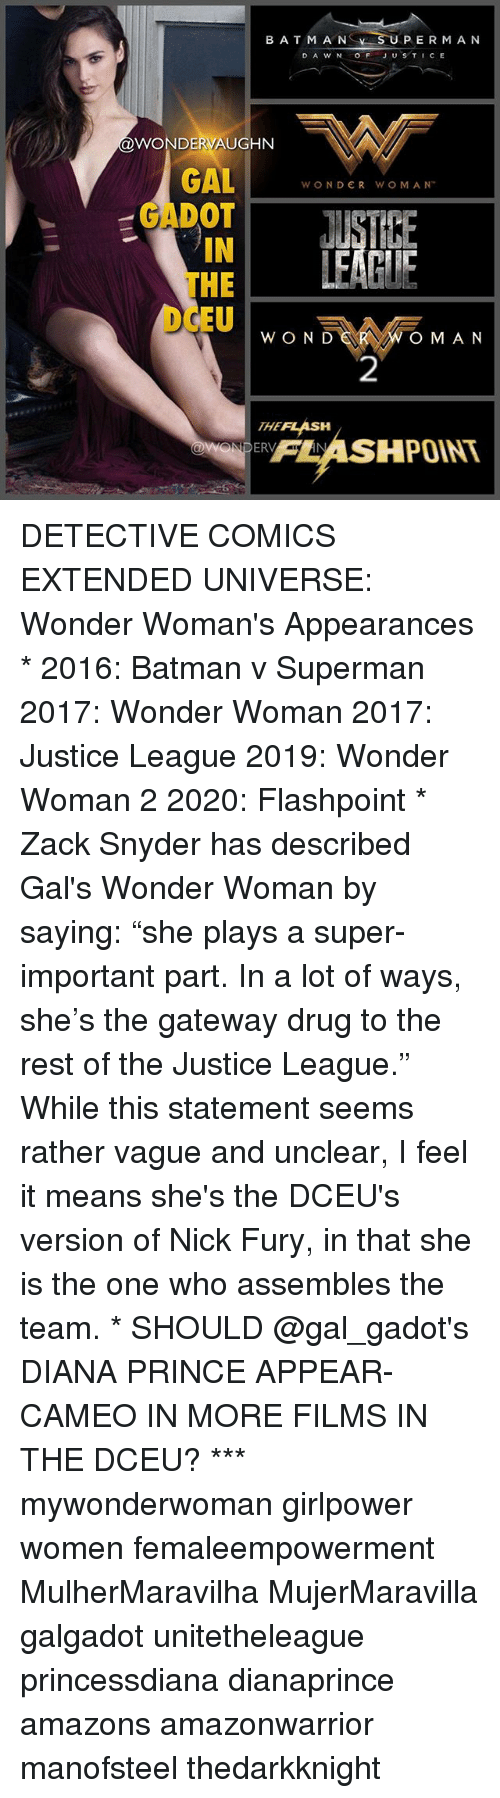 """Batman, Memes, and Prince: BATM A NS  SU  PERMA N  D A W N OFJUSTICE  @WONDERVAUGHN  GALWONDER WO M AM  GADOT  IN  THE  EUw O N  OM AN  2  THEFLASH  FLASHPOINT  95 DETECTIVE COMICS EXTENDED UNIVERSE: Wonder Woman's Appearances * 2016: Batman v Superman 2017: Wonder Woman 2017: Justice League 2019: Wonder Woman 2 2020: Flashpoint * Zack Snyder has described Gal's Wonder Woman by saying: """"she plays a super-important part. In a lot of ways, she's the gateway drug to the rest of the Justice League."""" While this statement seems rather vague and unclear, I feel it means she's the DCEU's version of Nick Fury, in that she is the one who assembles the team. * SHOULD @gal_gadot's DIANA PRINCE APPEAR-CAMEO IN MORE FILMS IN THE DCEU? *** mywonderwoman girlpower women femaleempowerment MulherMaravilha MujerMaravilla galgadot unitetheleague princessdiana dianaprince amazons amazonwarrior manofsteel thedarkknight"""